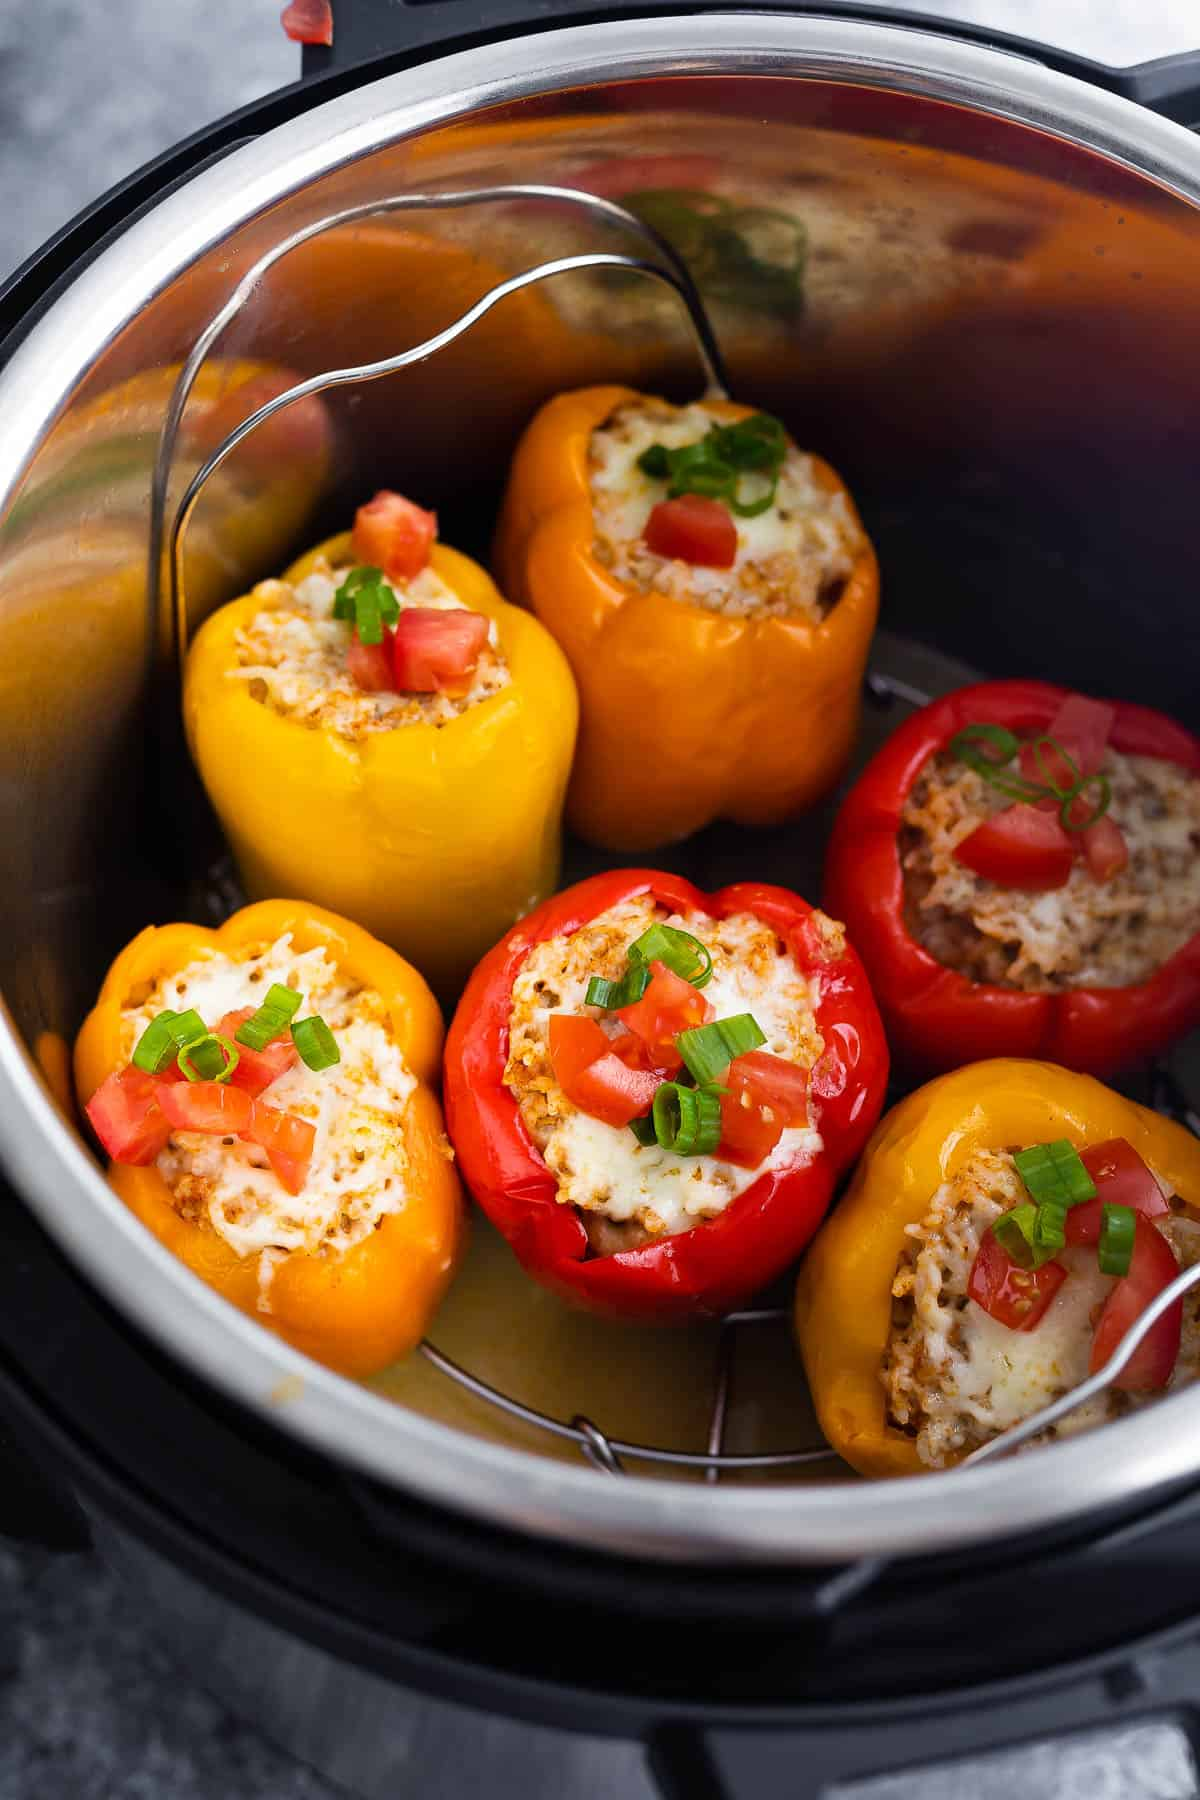 Stuffed peppers in the finished pot